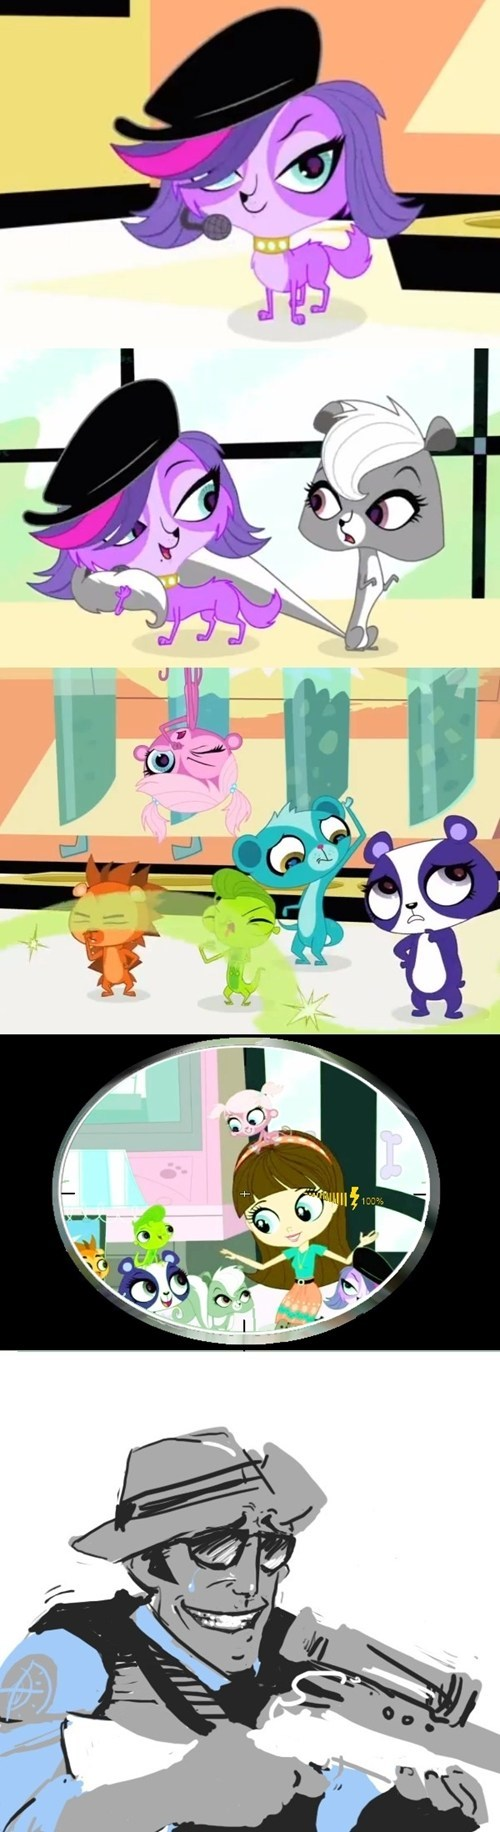 littlest pet shop cartoons TF2 - 8000548352